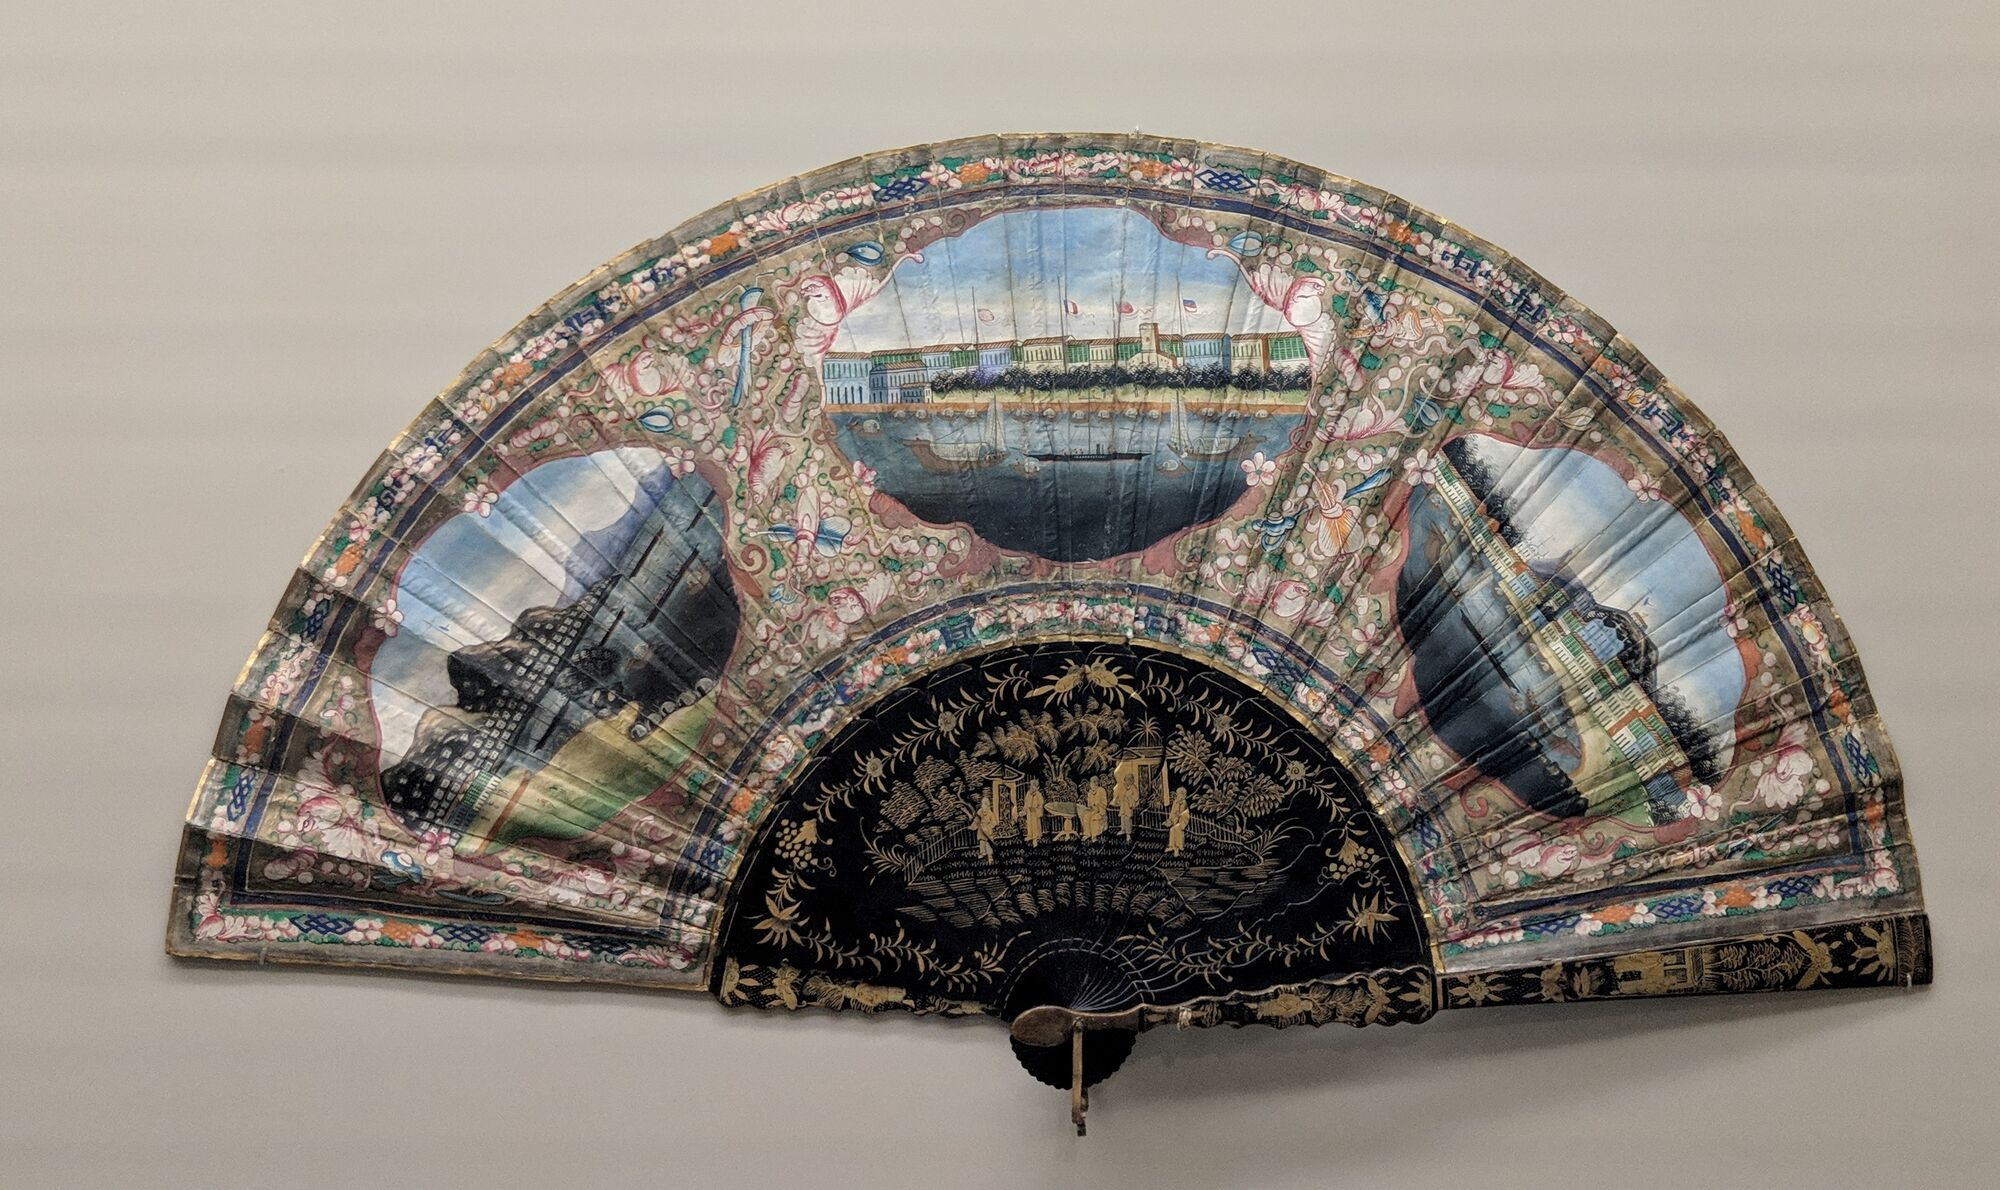 Fan with views of Hong Kong, Guangzhou and Macau, 19th century. Chinese fans were highly sought after in the West.